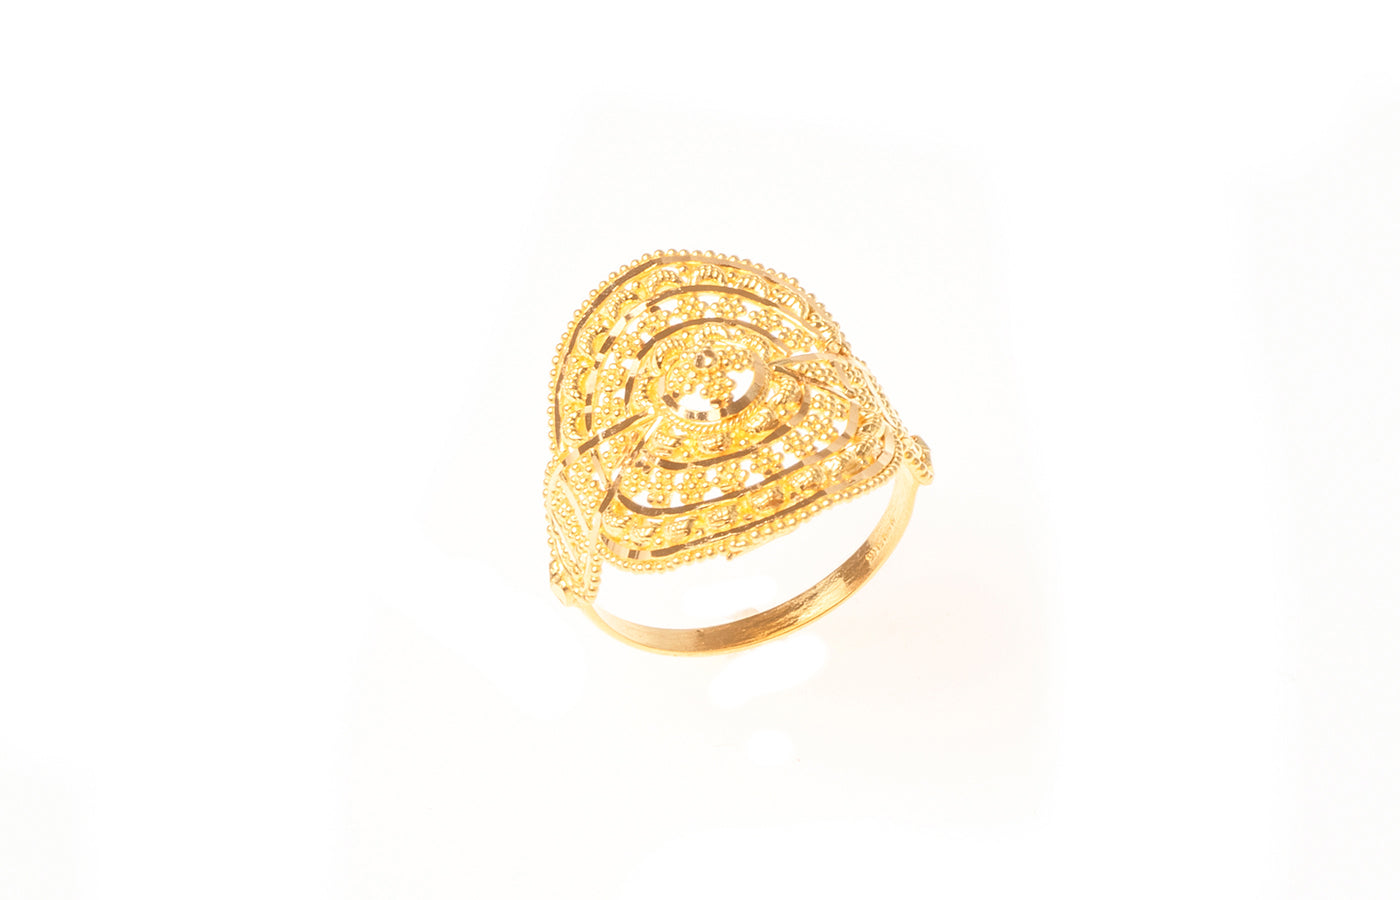 22ct Gold Filigree Dress Ring (3.9g) LR-7822